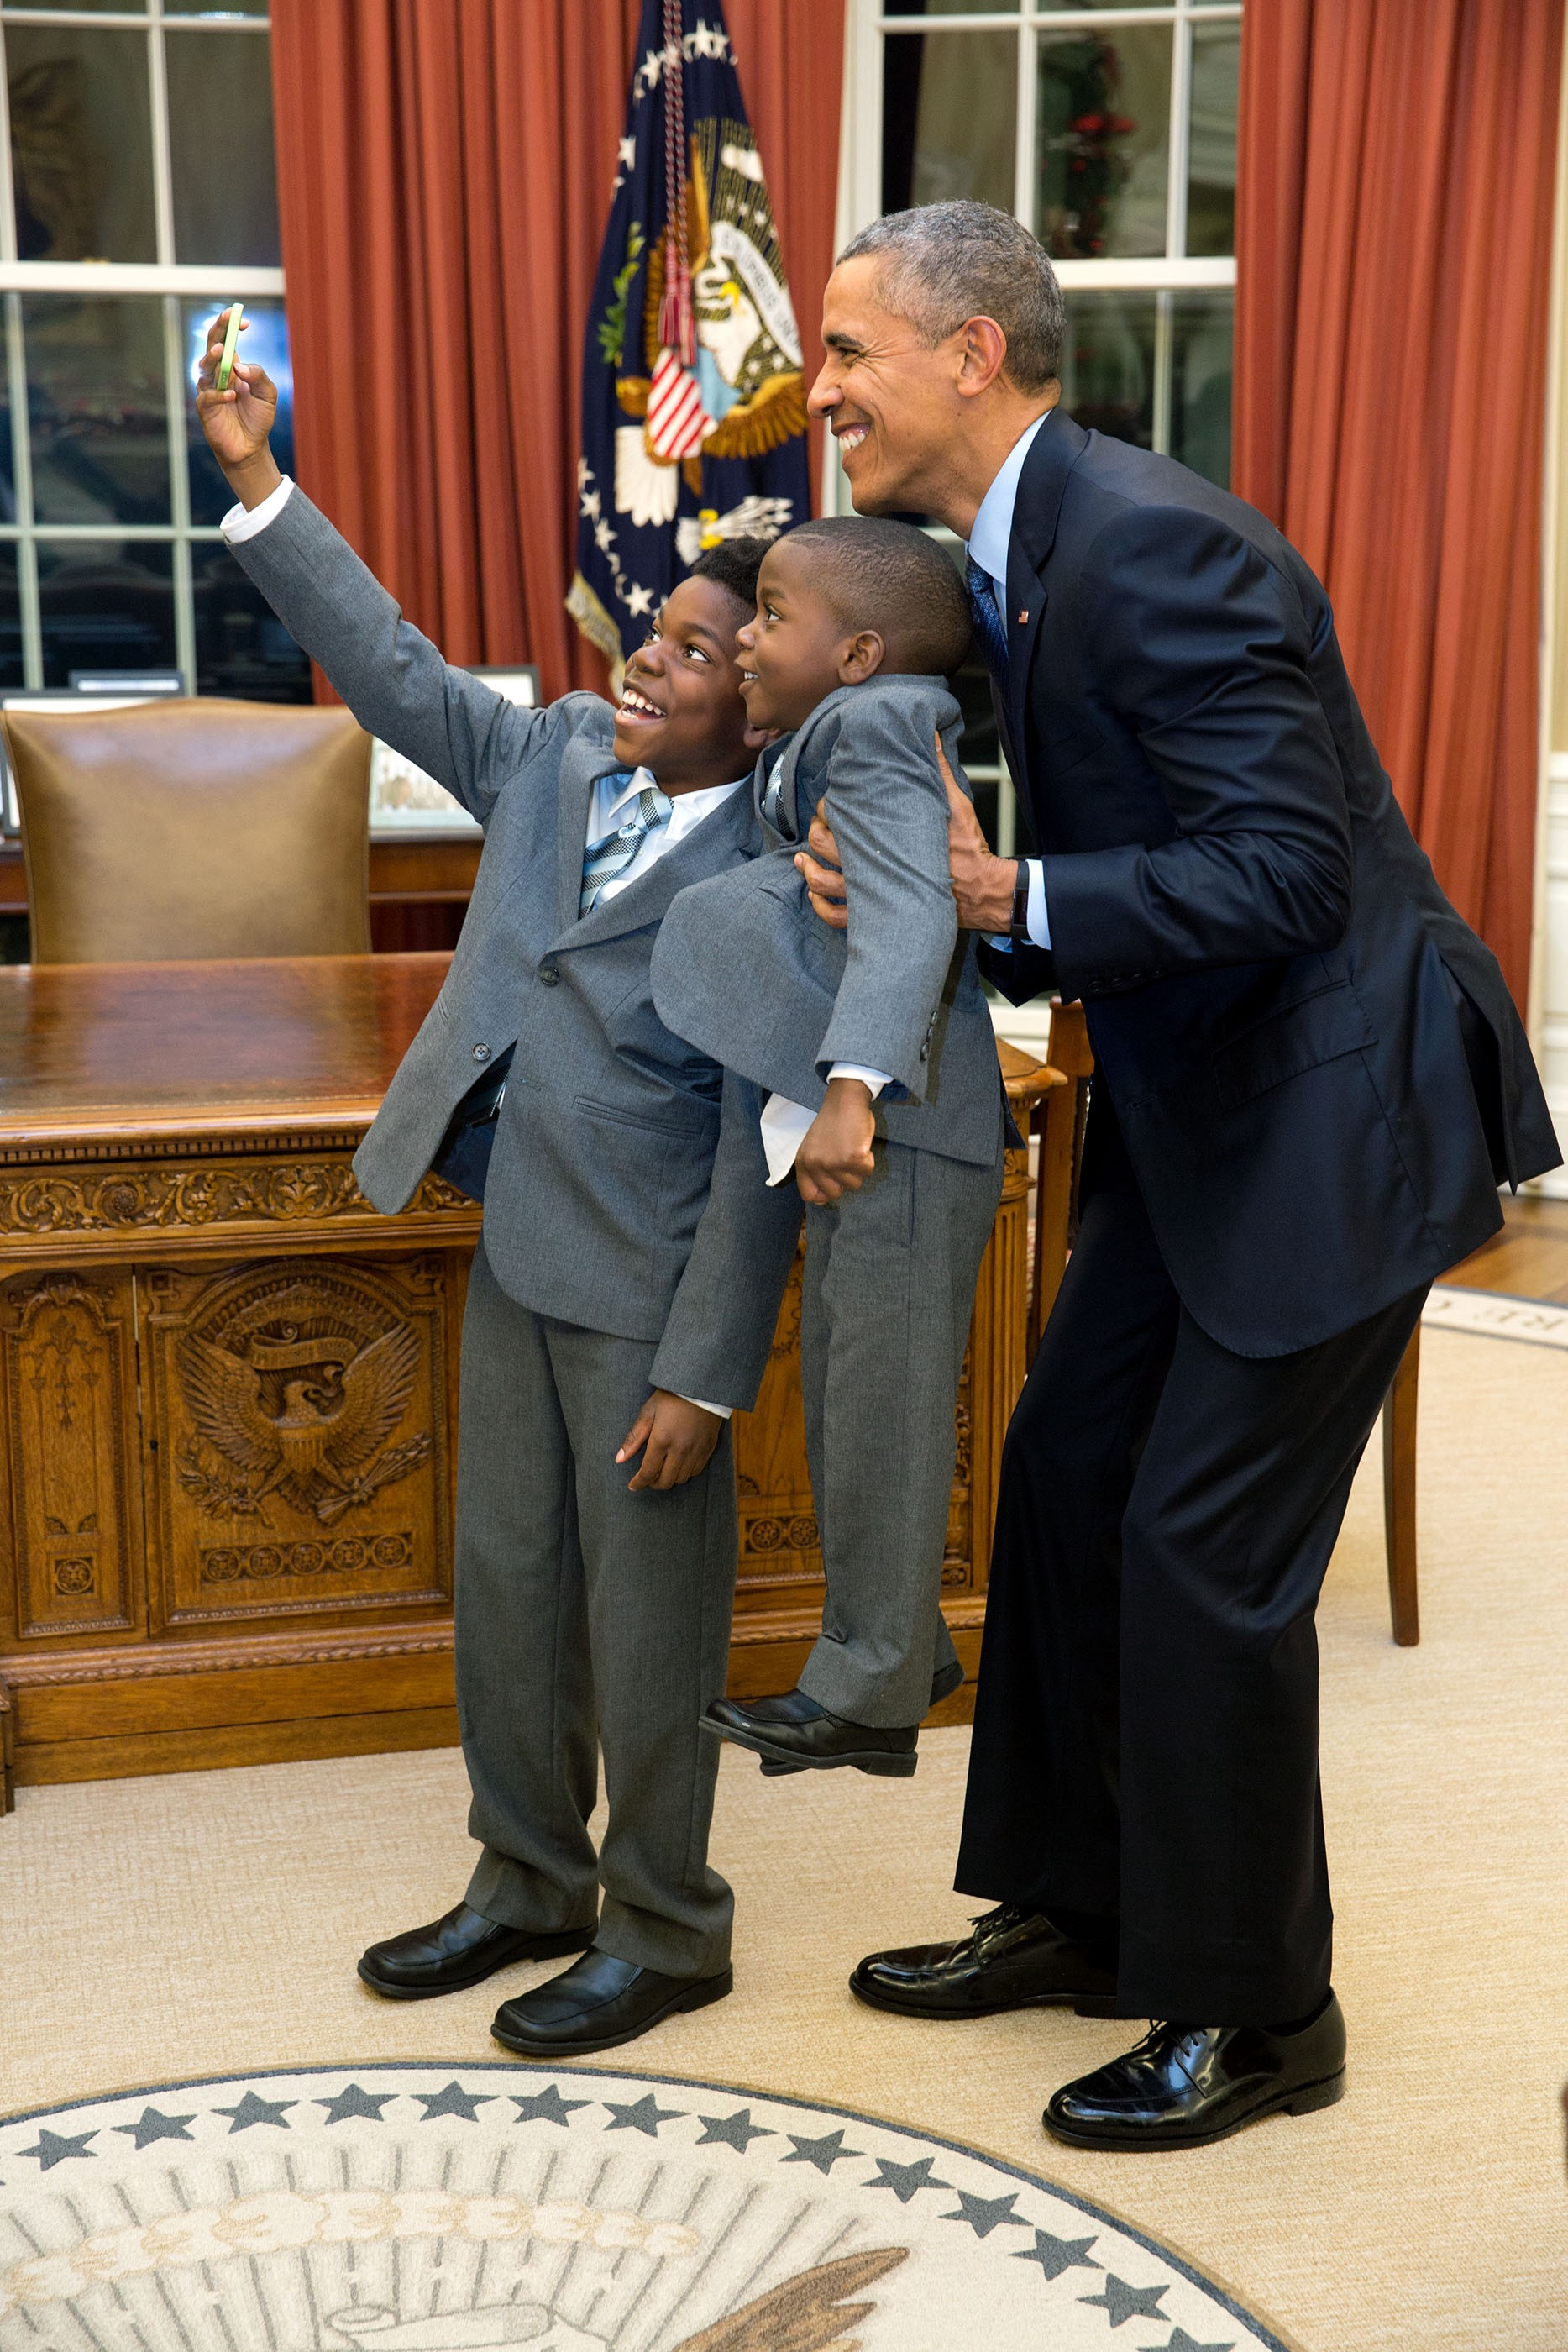 "Dec. 4, 2015 ""The President acquiesced to a selfie with 11-year-old Jacob Haynes and four-year-old James Haynes after taking a family photograph with departing White House staffer Heather Foster."" (Official White House Photo by Pete Souza)"